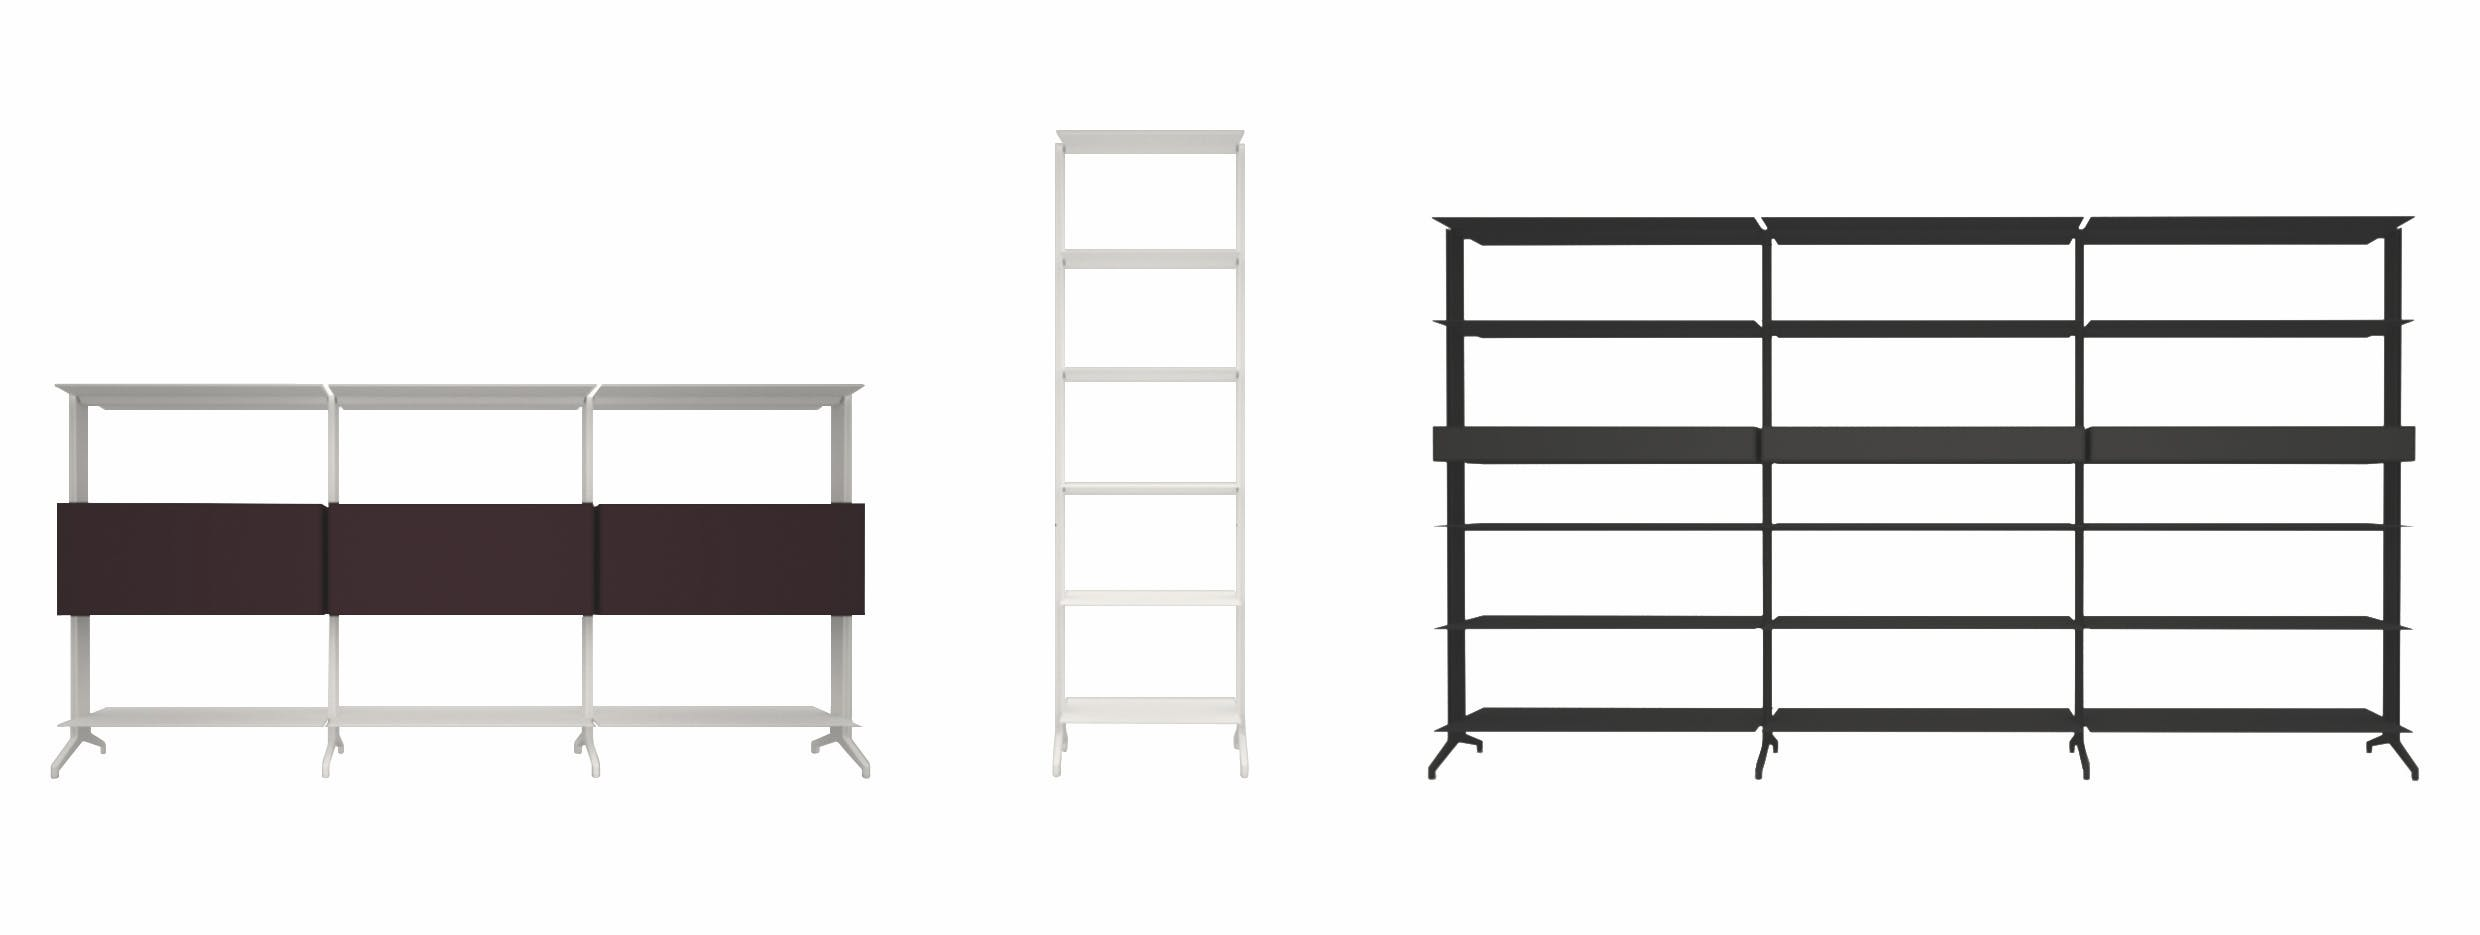 Alias-furniture-aline-shelving-system-multiple-configurations-haute-living